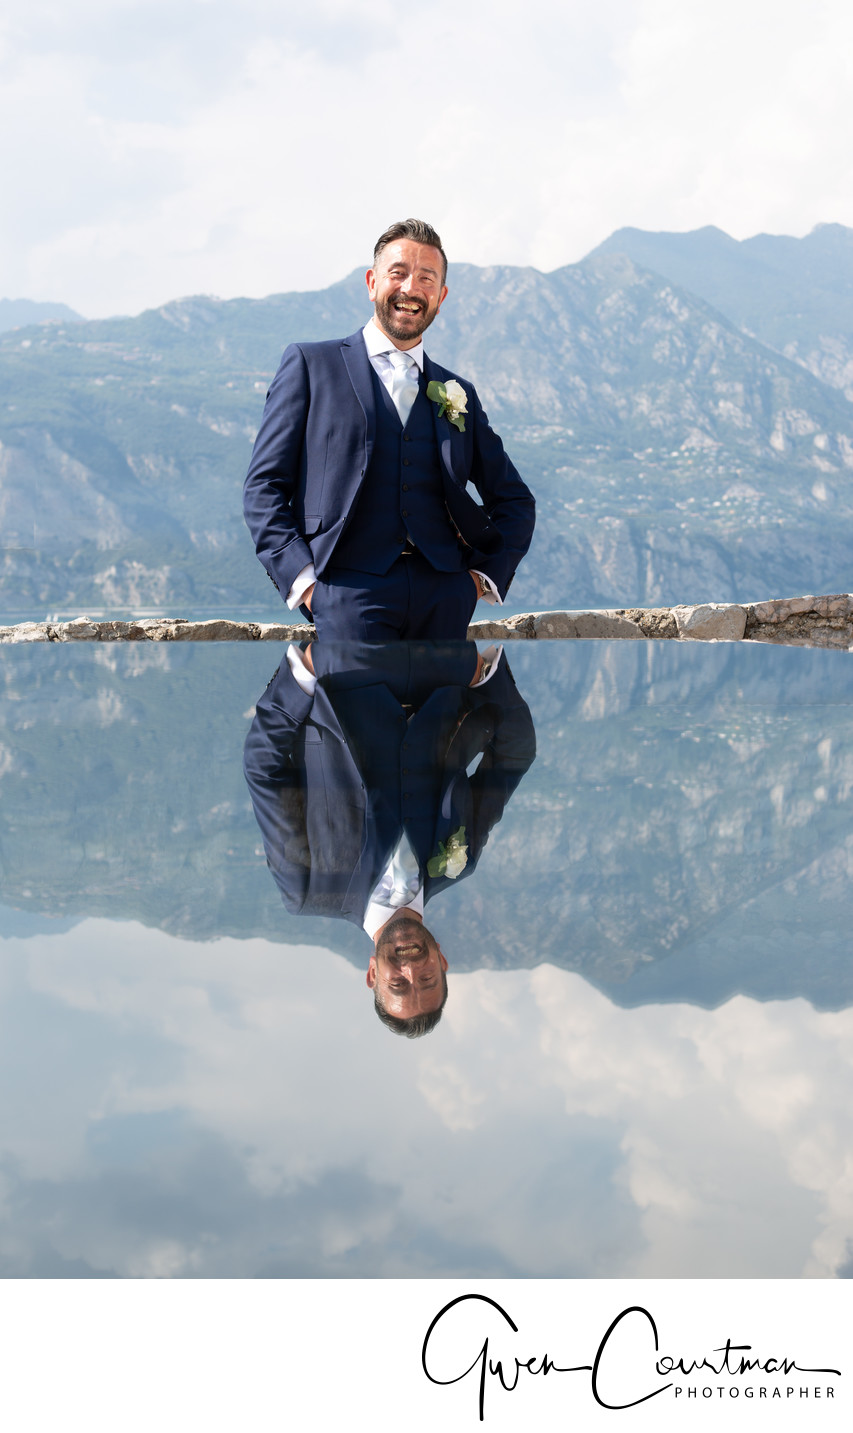 Wayne reflection in Malcesine Castle